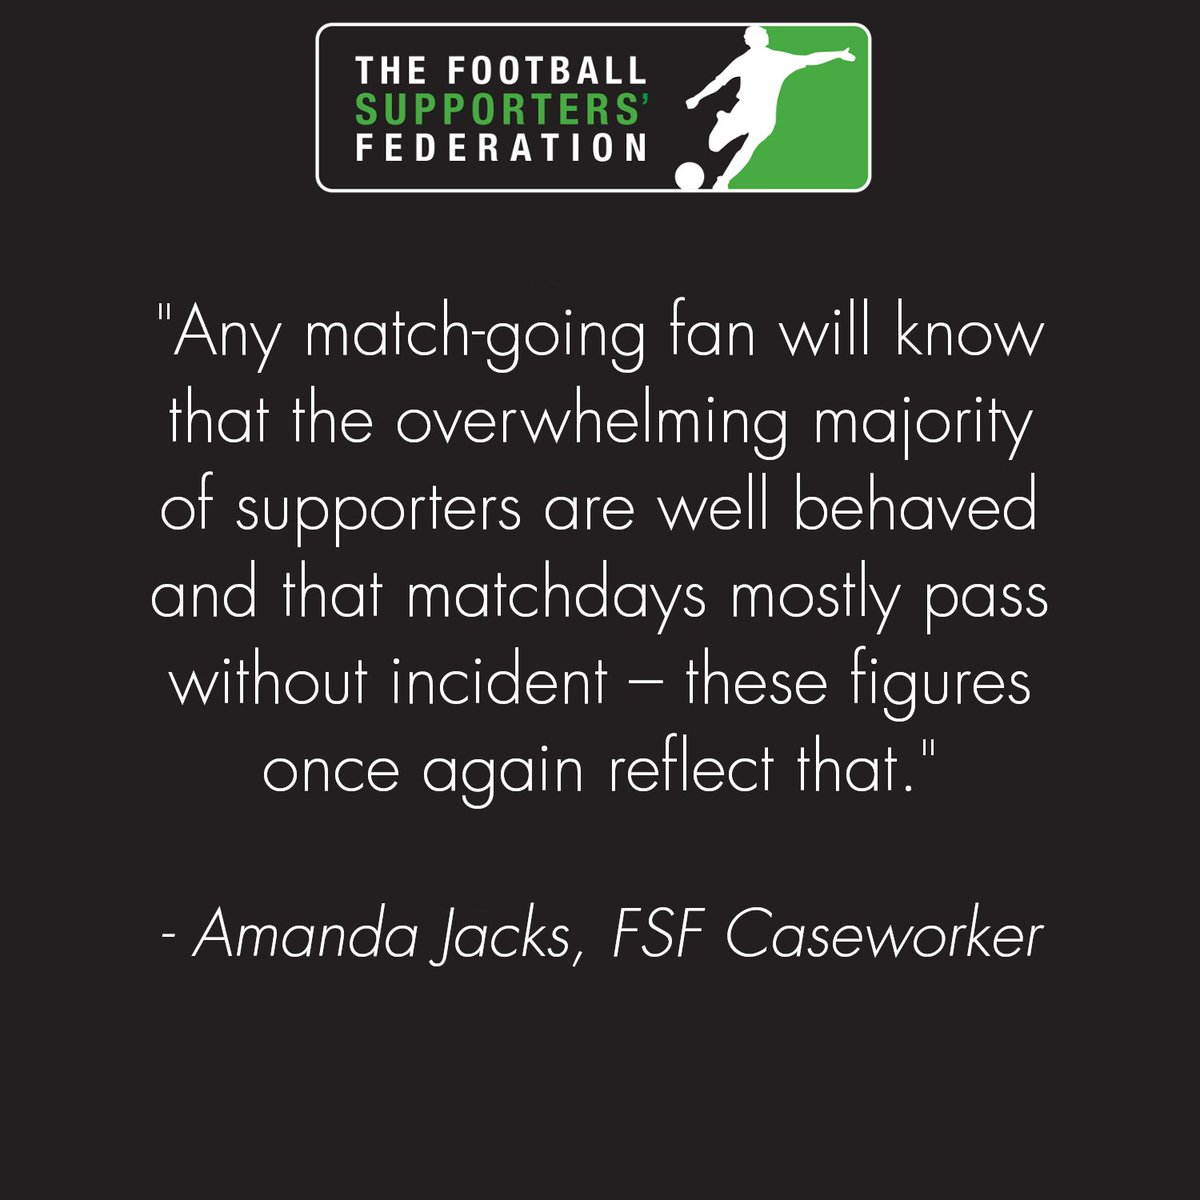 Football-related arrests remain at historically low levels - with further 6% decrease: fsf.org.uk/blog/view/foot…